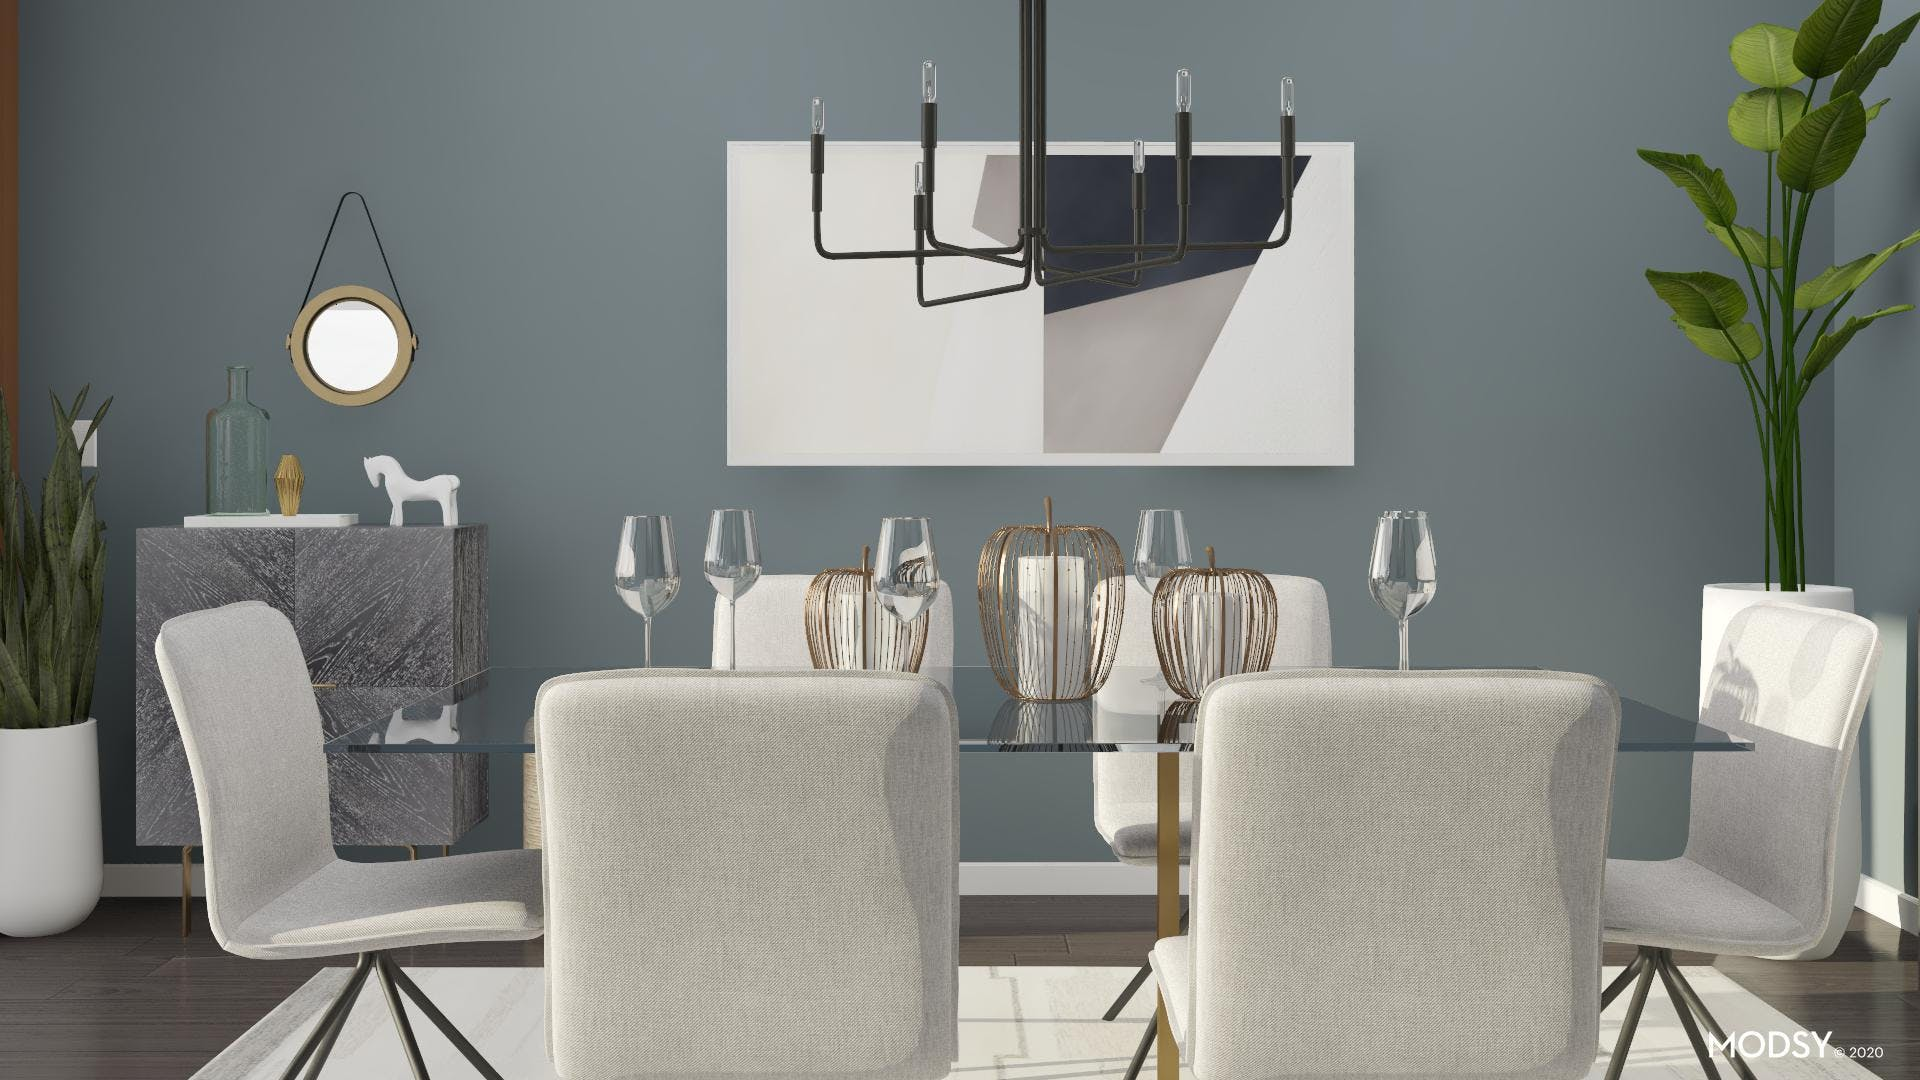 Dine with Contemporary Style